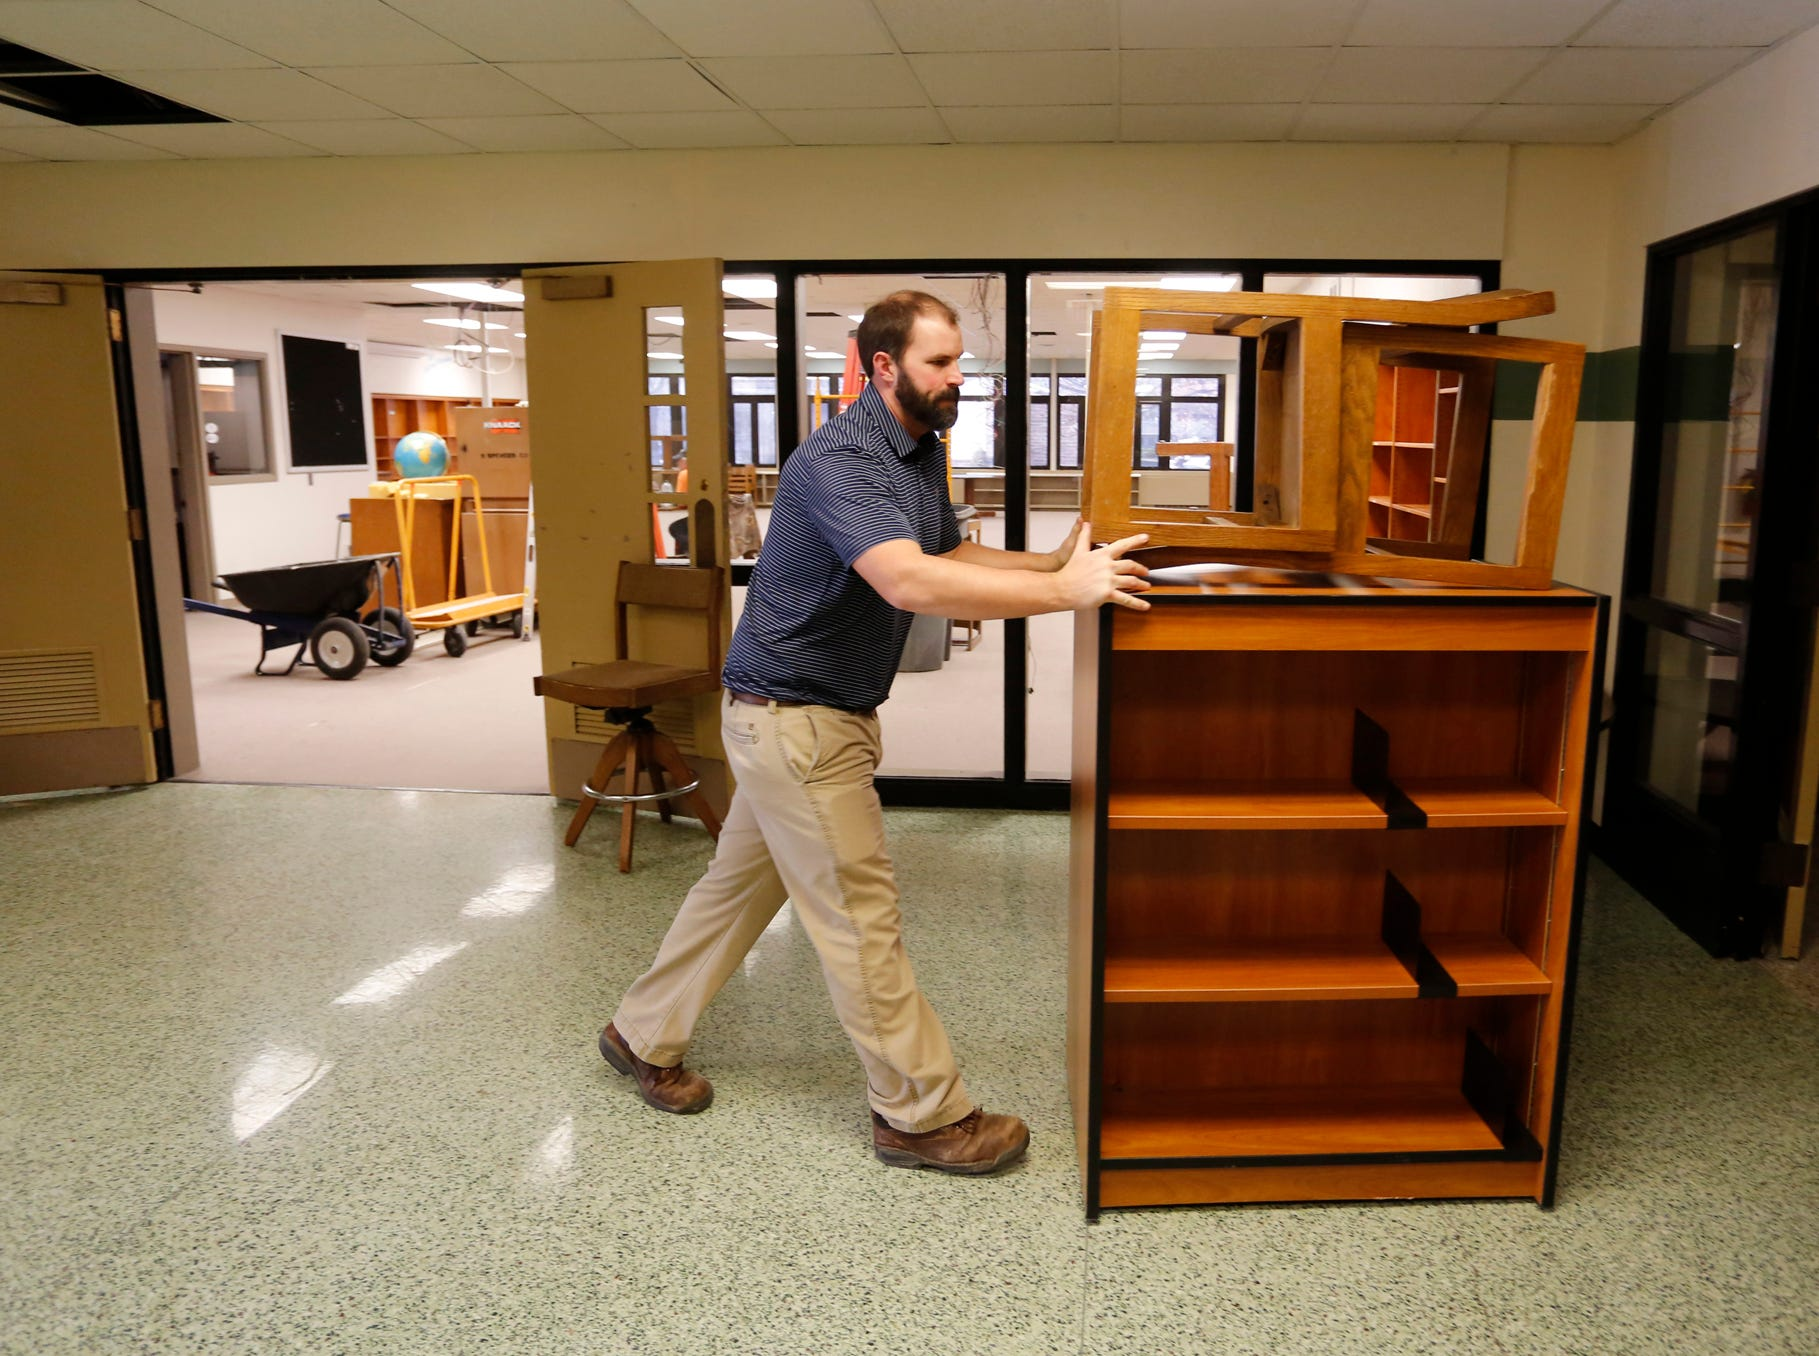 Building Commissioner Chad Spitznagle pushes a cabinet and chairs down a hallway as the City of West Lafayette moves its offices from the Morton Center into the former Happy Hollow School Monday, December 17, 2018, in West Lafayette. The city will keep it's offices in Happy Hollow for two years while the Morton Center is being renovated. The city will move its offices back to the Morton Center when renovations are completed.